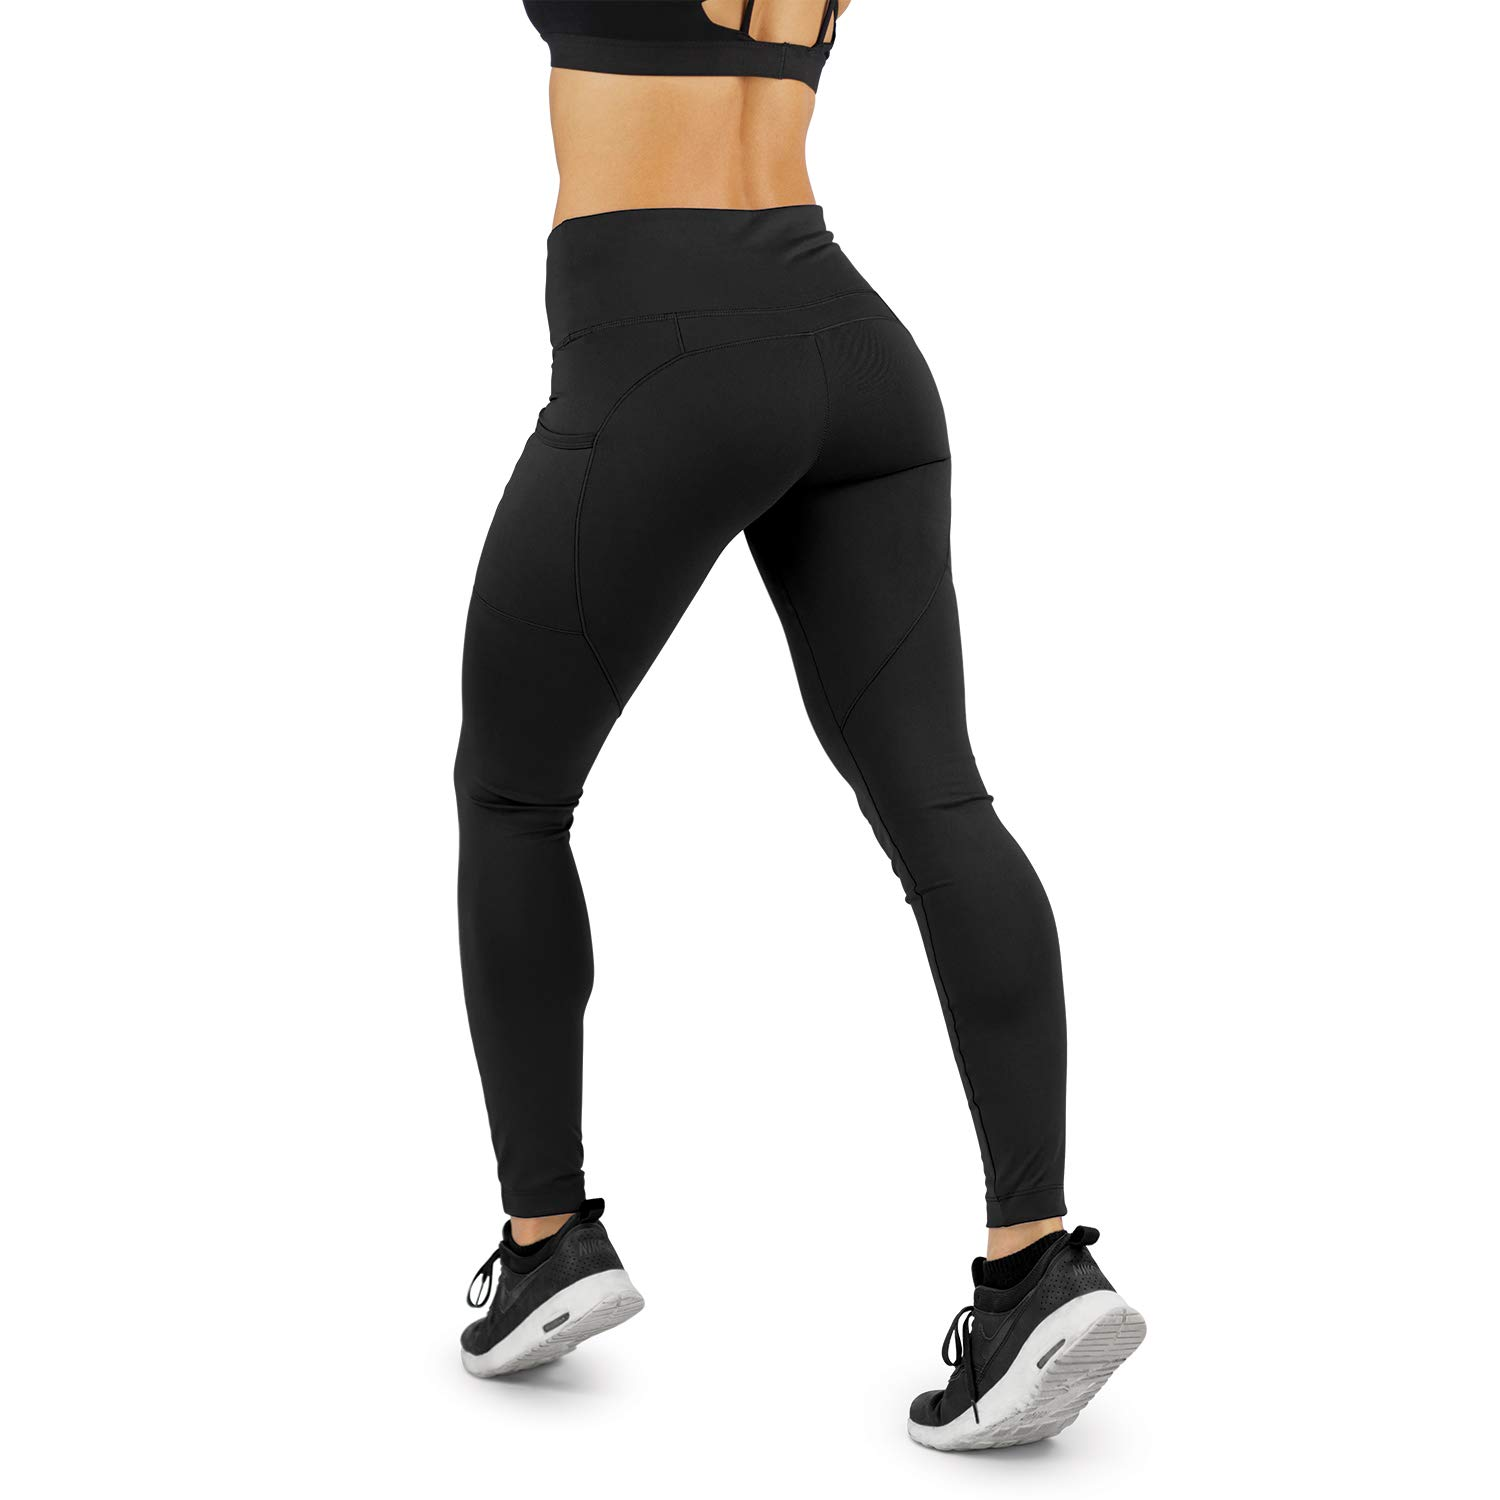 1a68f936a0 Amazon.com: Contour Athletics Workout Leggings for Women with Pockets,  Premium HydraFit Technology: Clothing